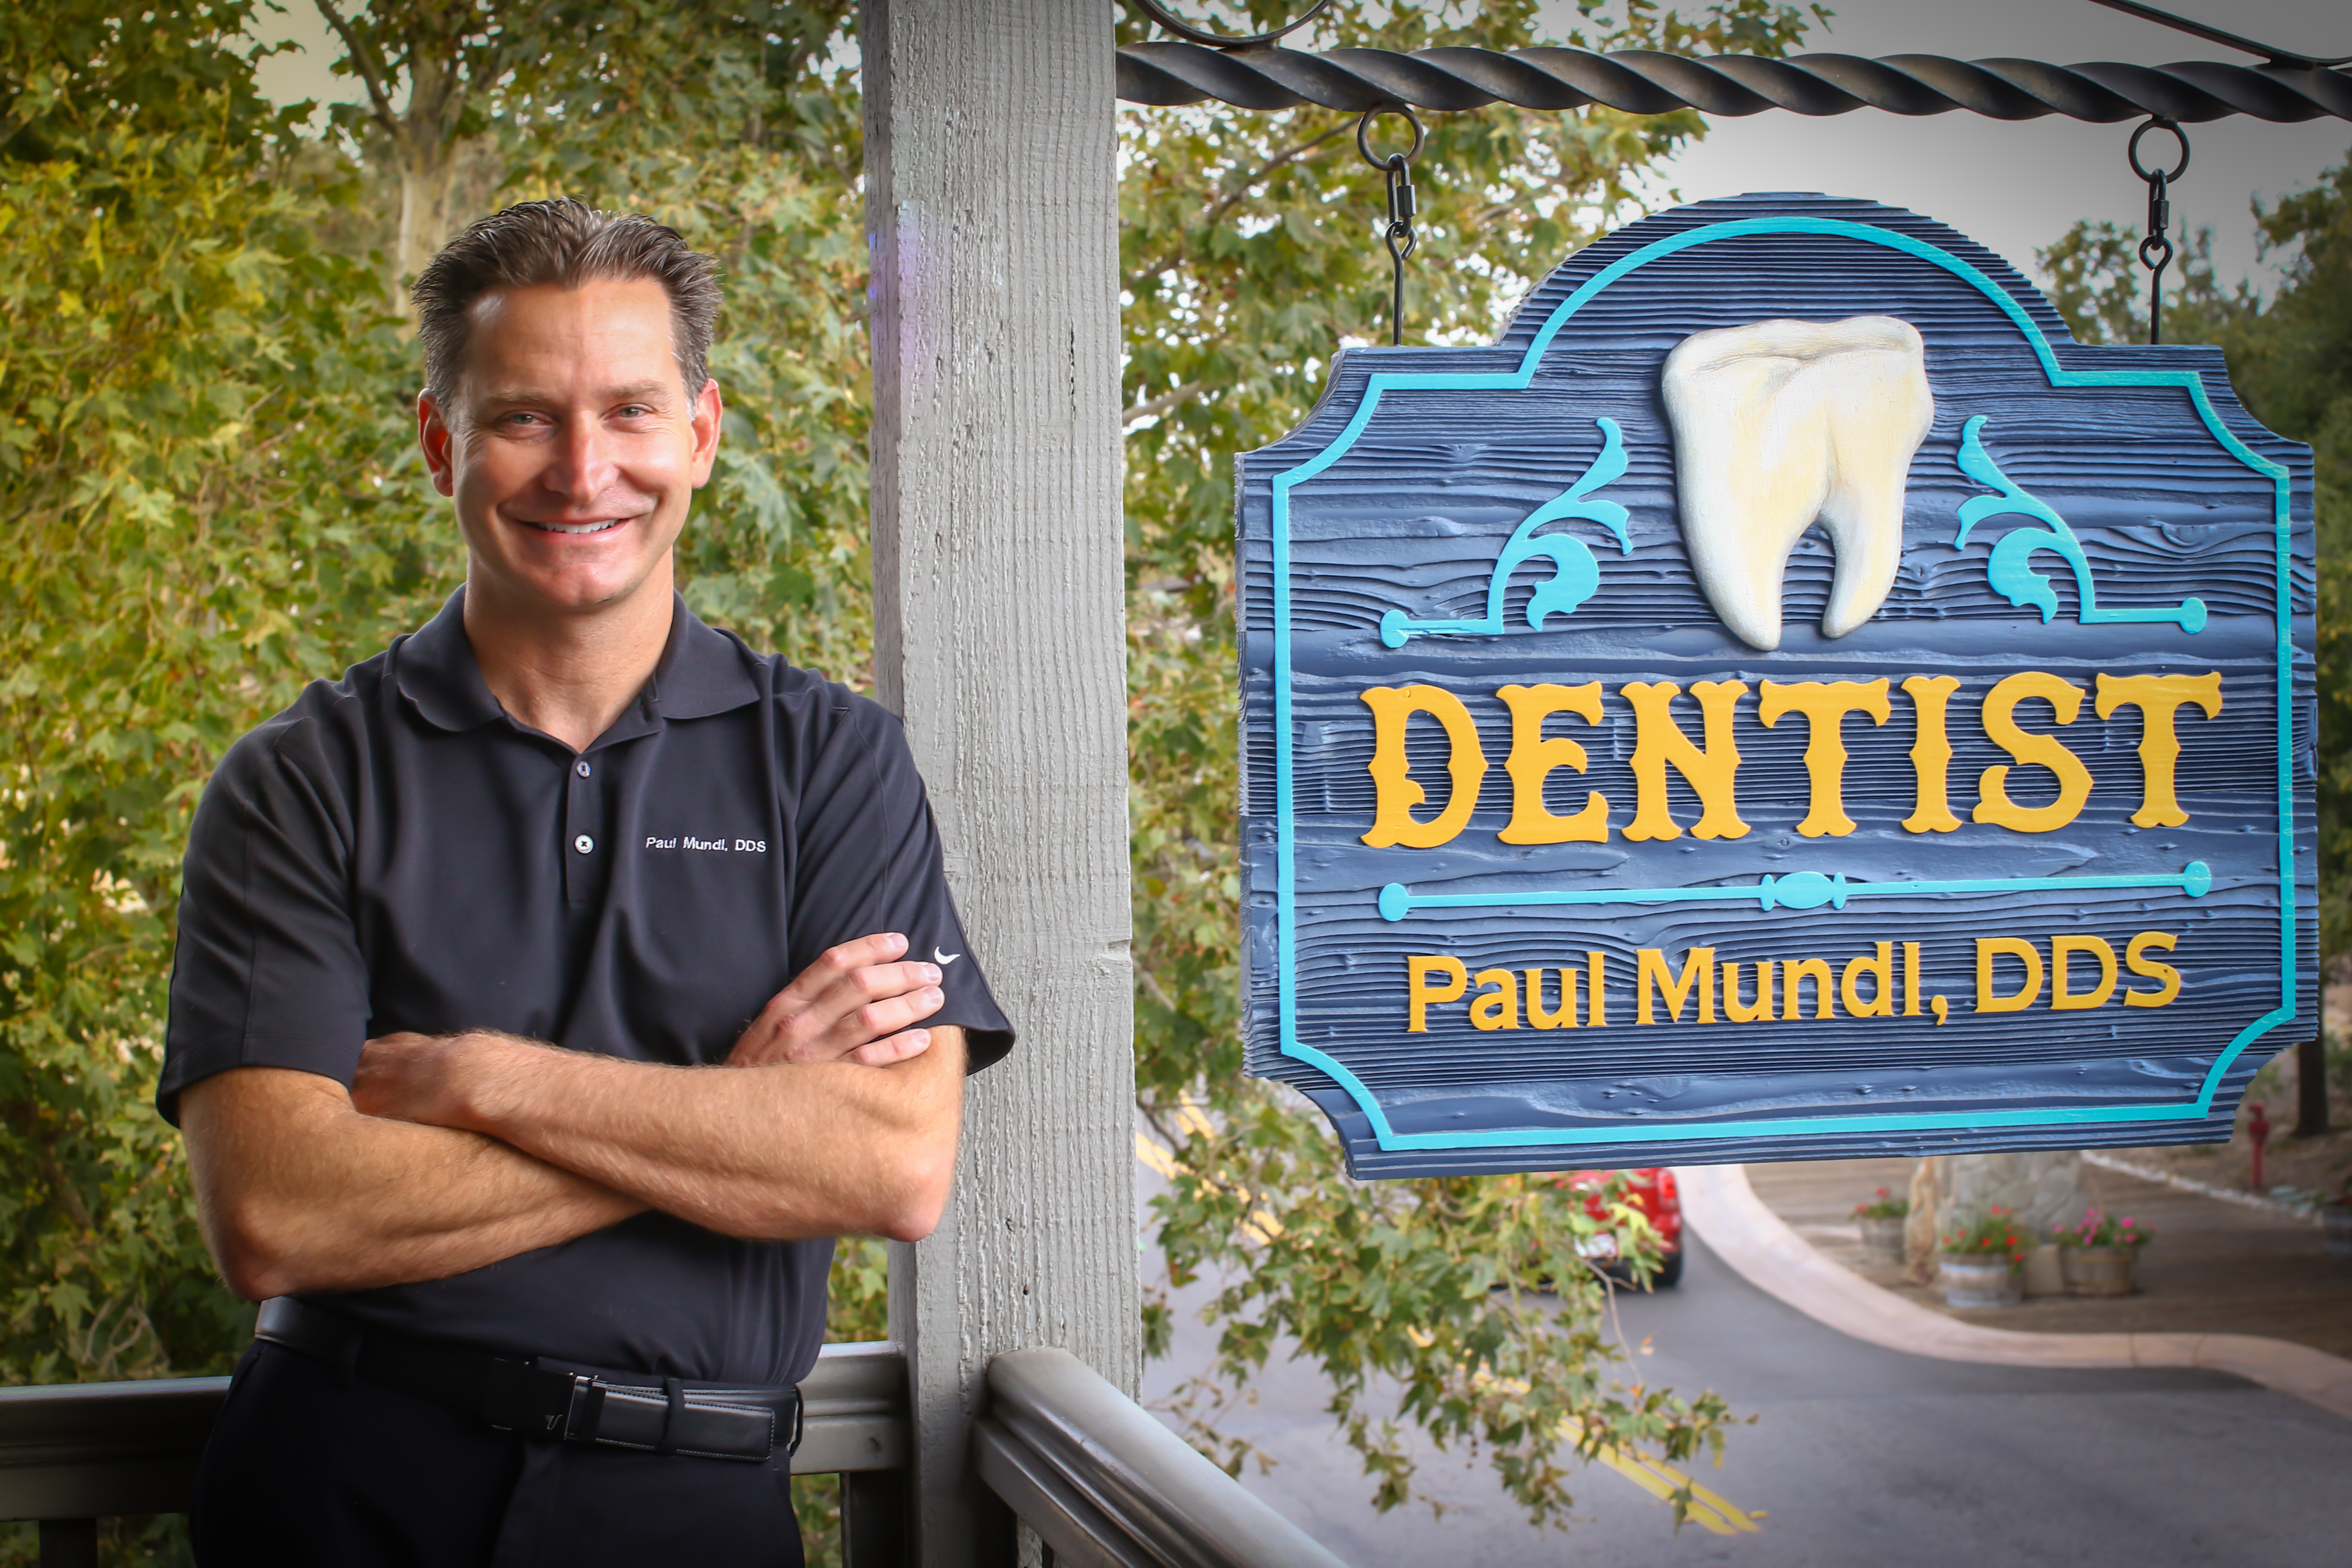 Inland Valley Dental Care: Paul Mundl, DDS reviews | Cosmetic Dentists at 28459 Old Town Front St Suite #215 - Temecula CA